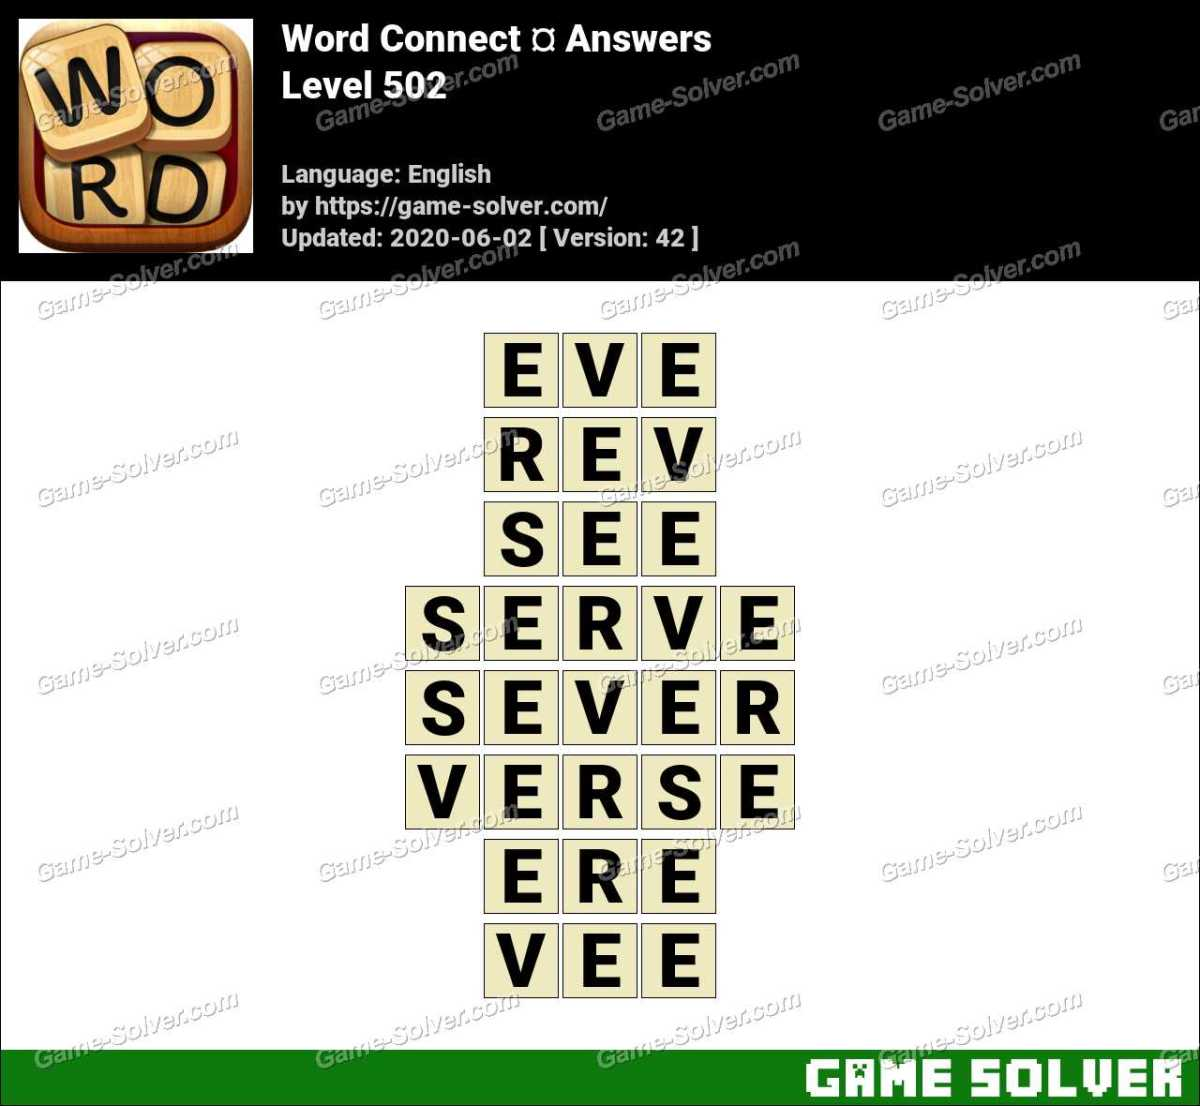 Word Connect Level 502 Answers